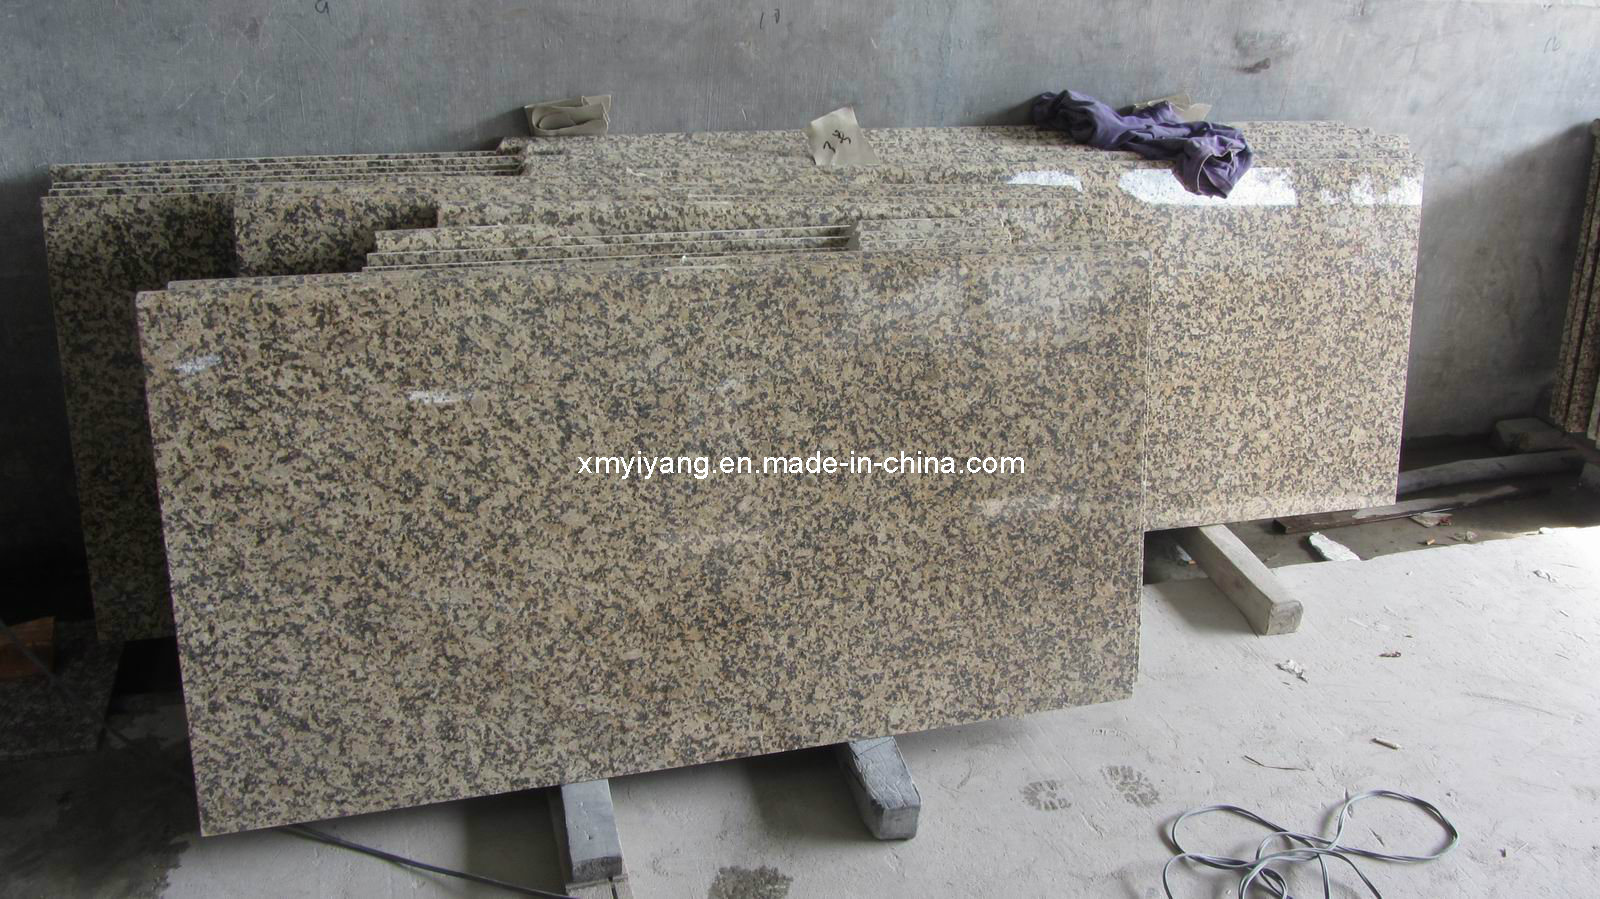 Daisy Yellow Granite Countertops & Vanity Tops (YY-CT8603)